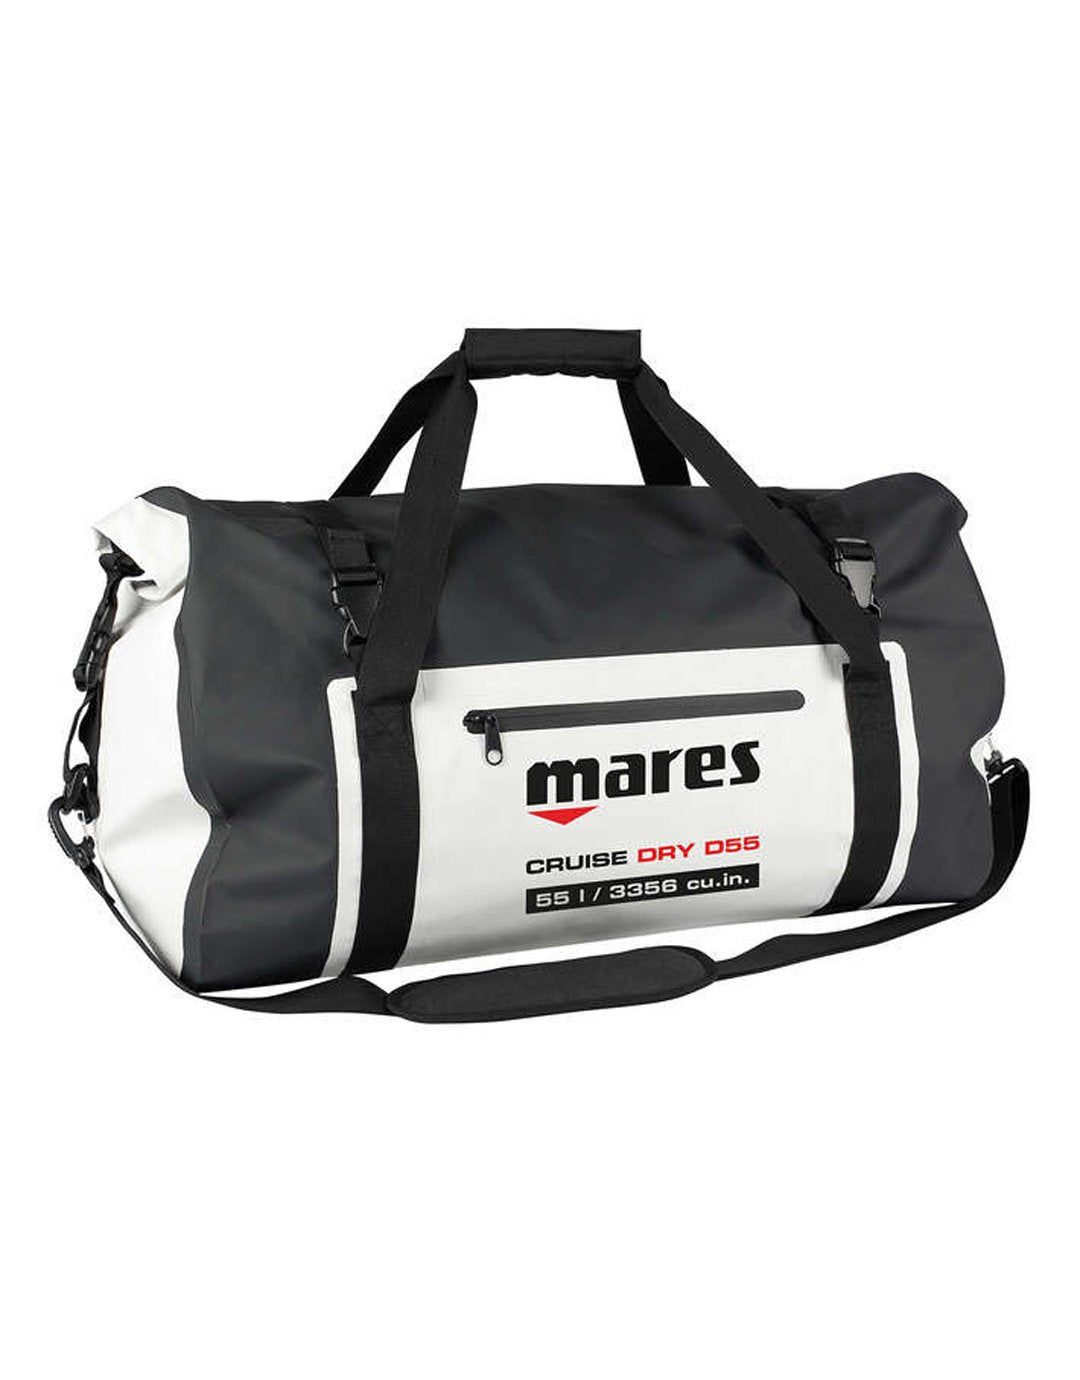 Image of Mares D55 Dry Bag